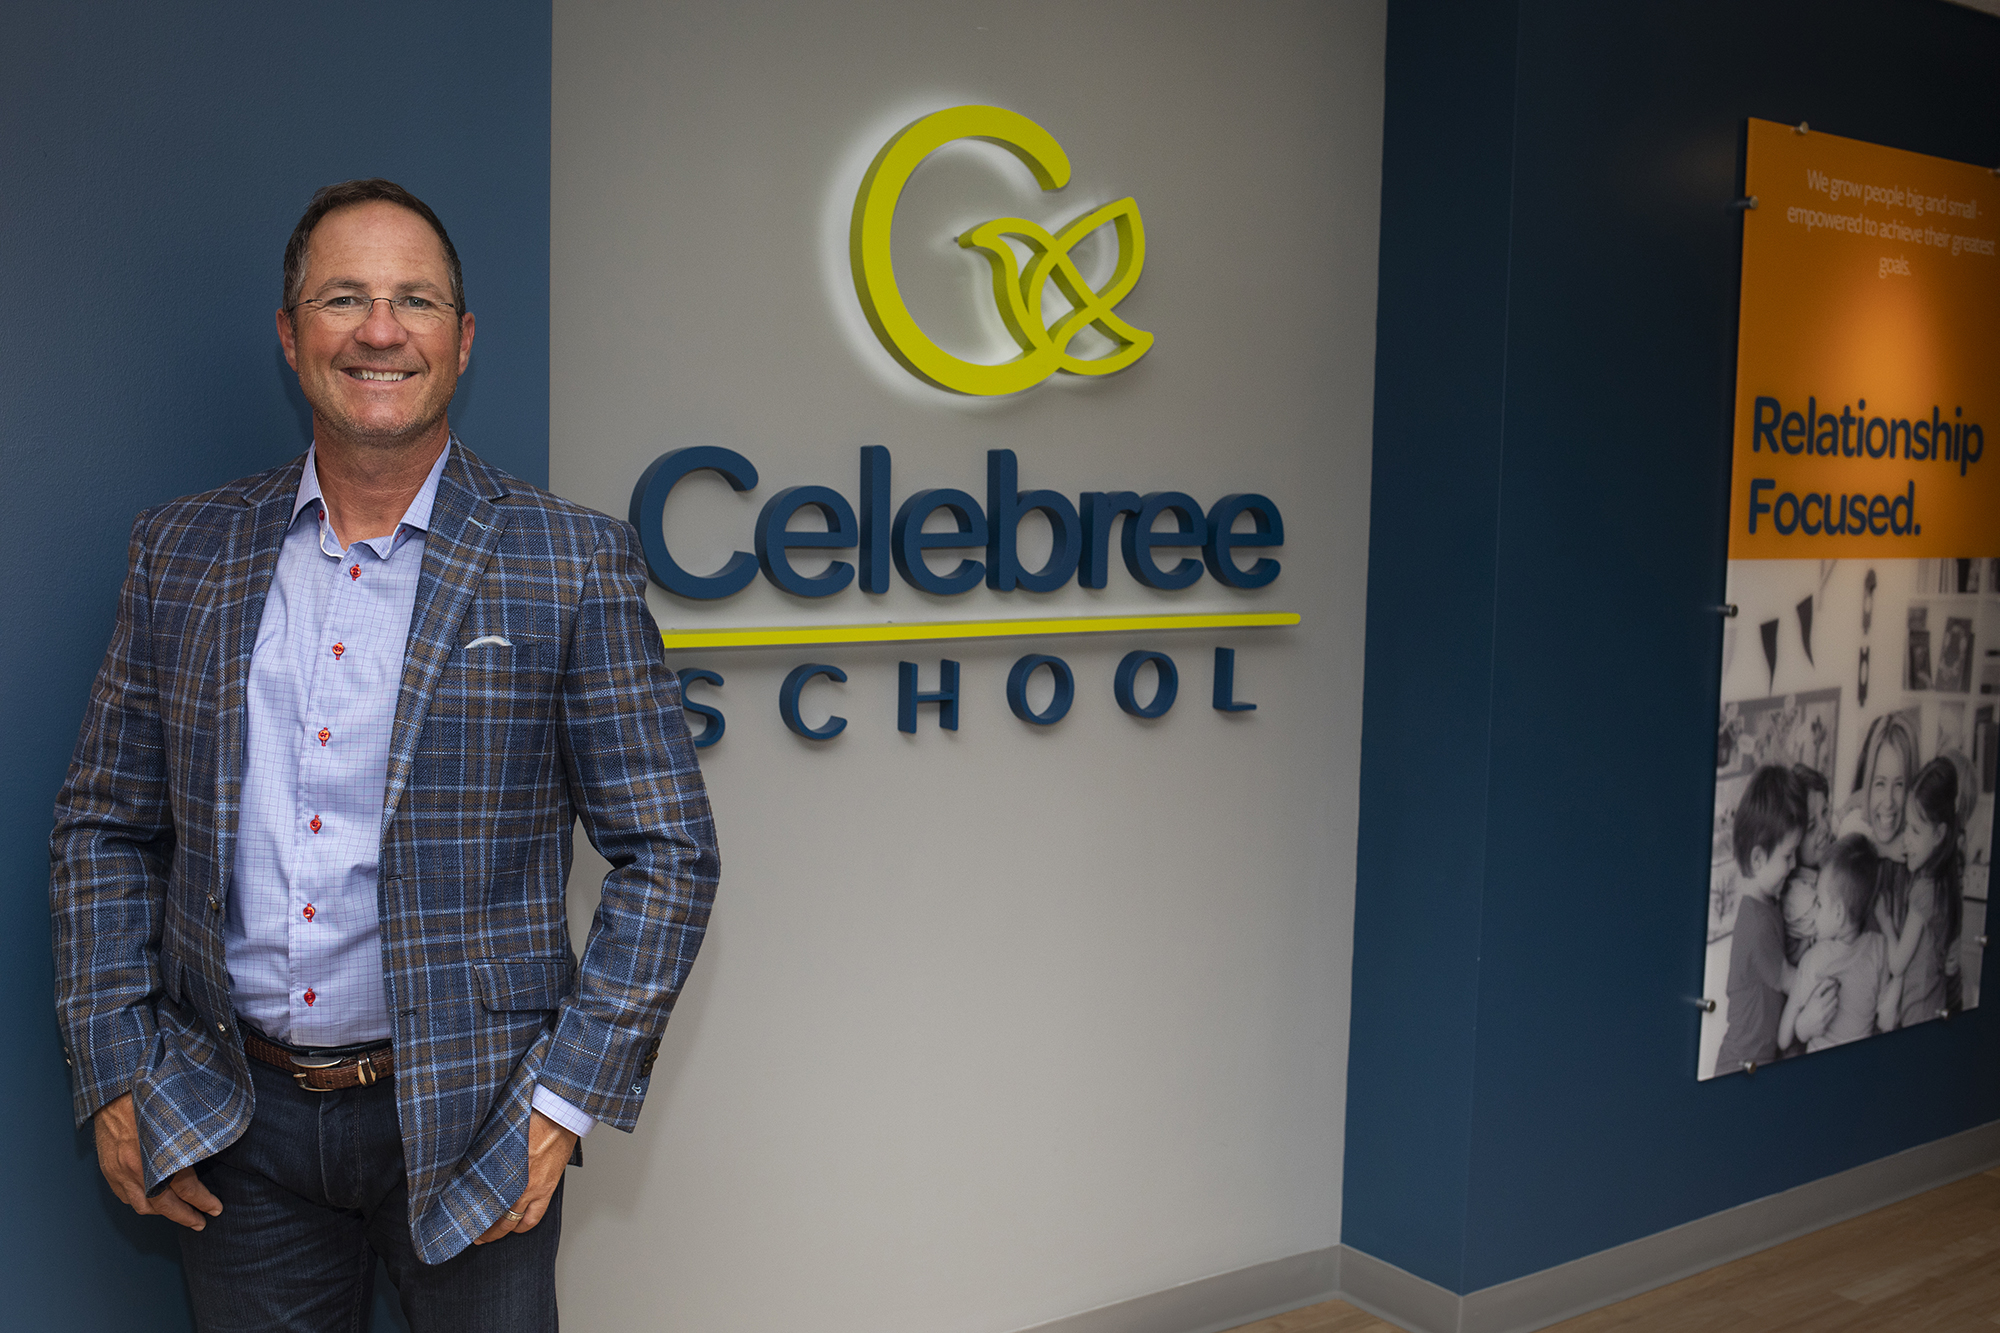 Richard Huffman, CEO of Celebree Schools, stands in front of wall with Celebree School logo